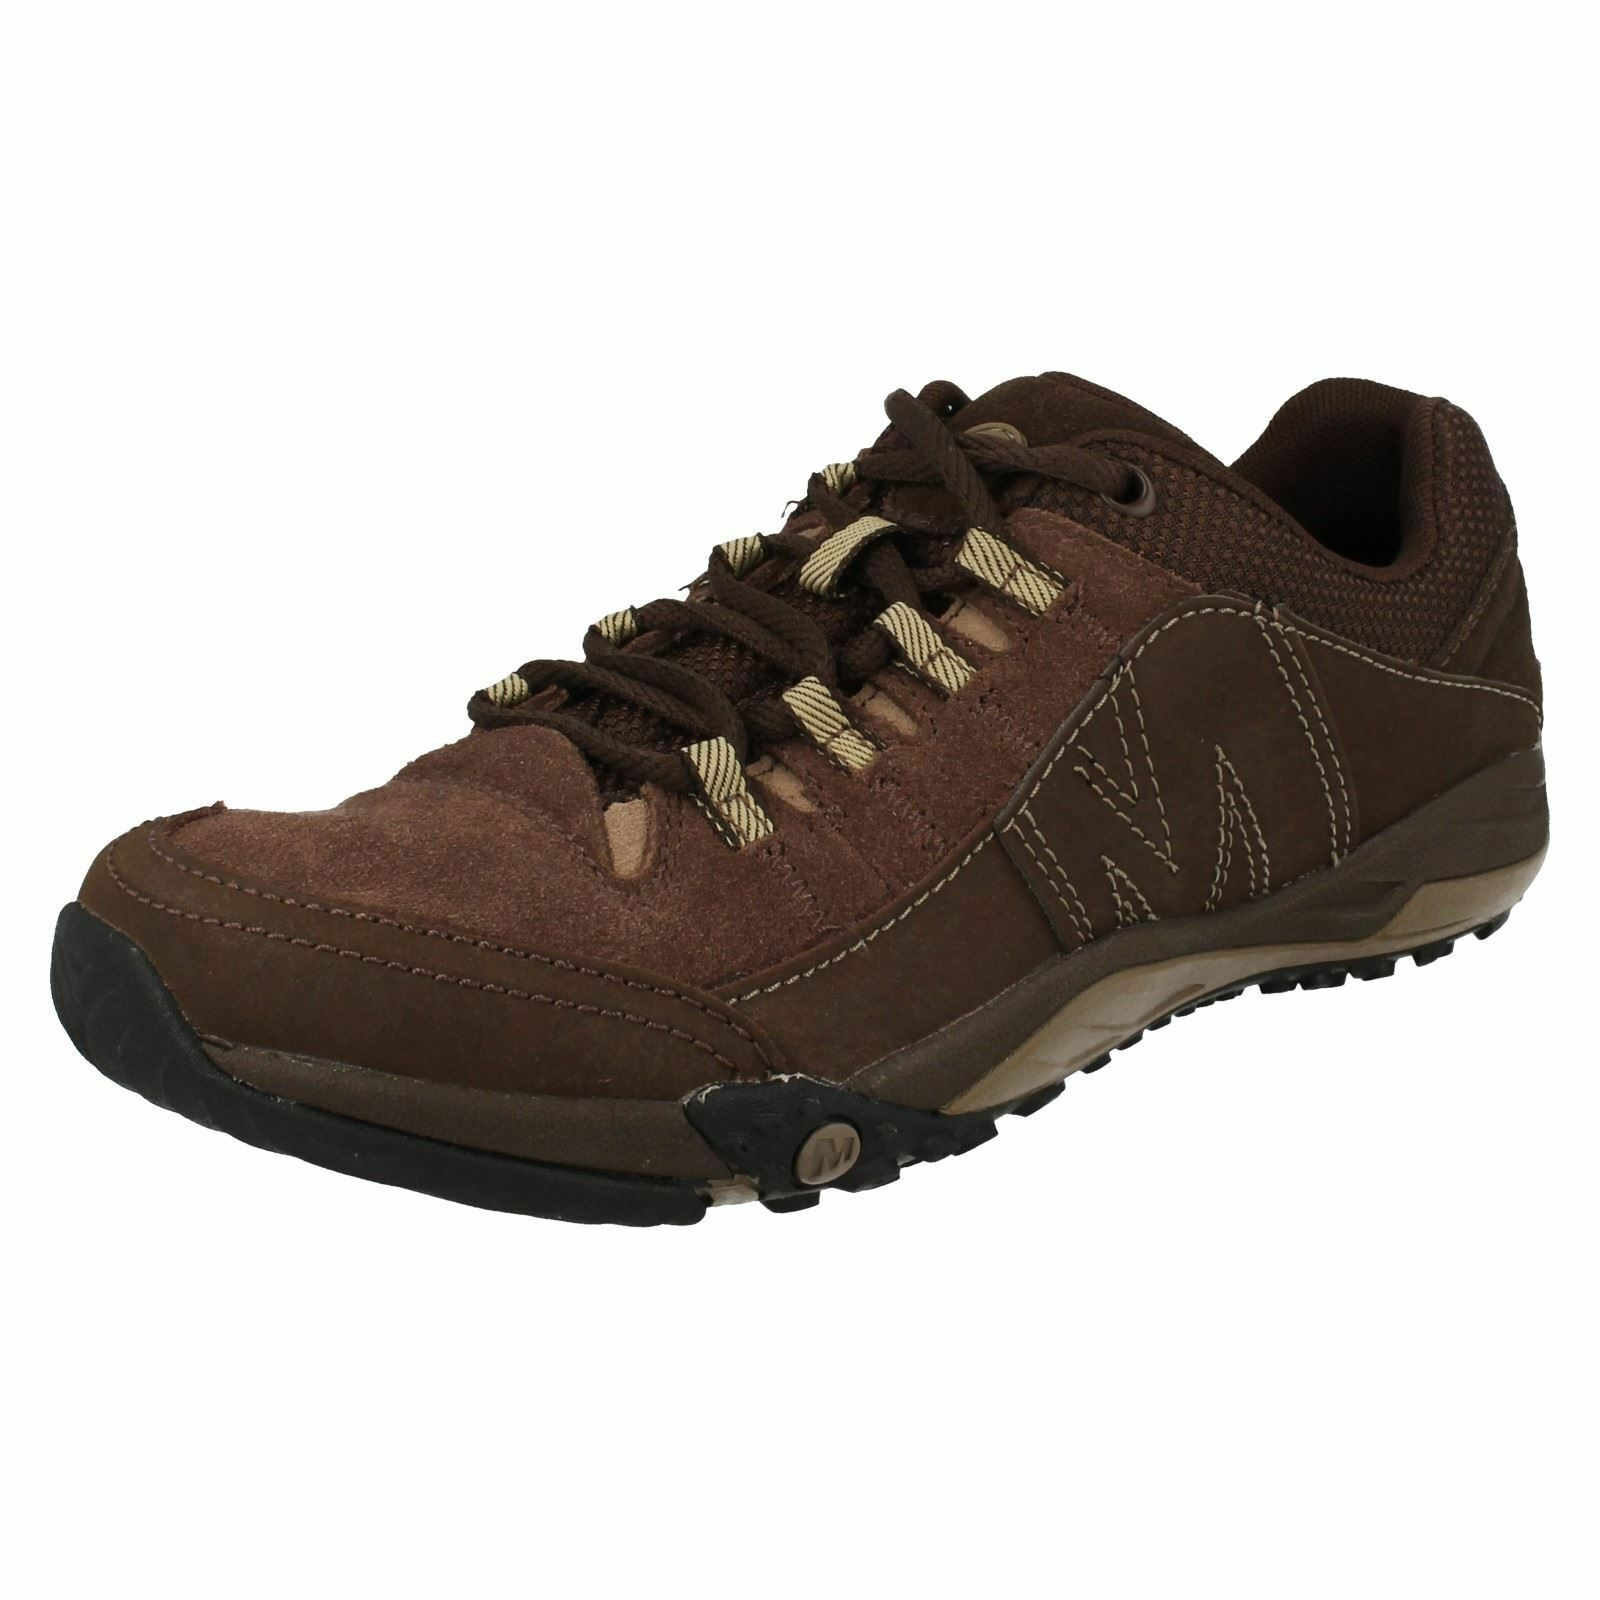 hommes Merrell Lace Up Trainers Helixer Evo